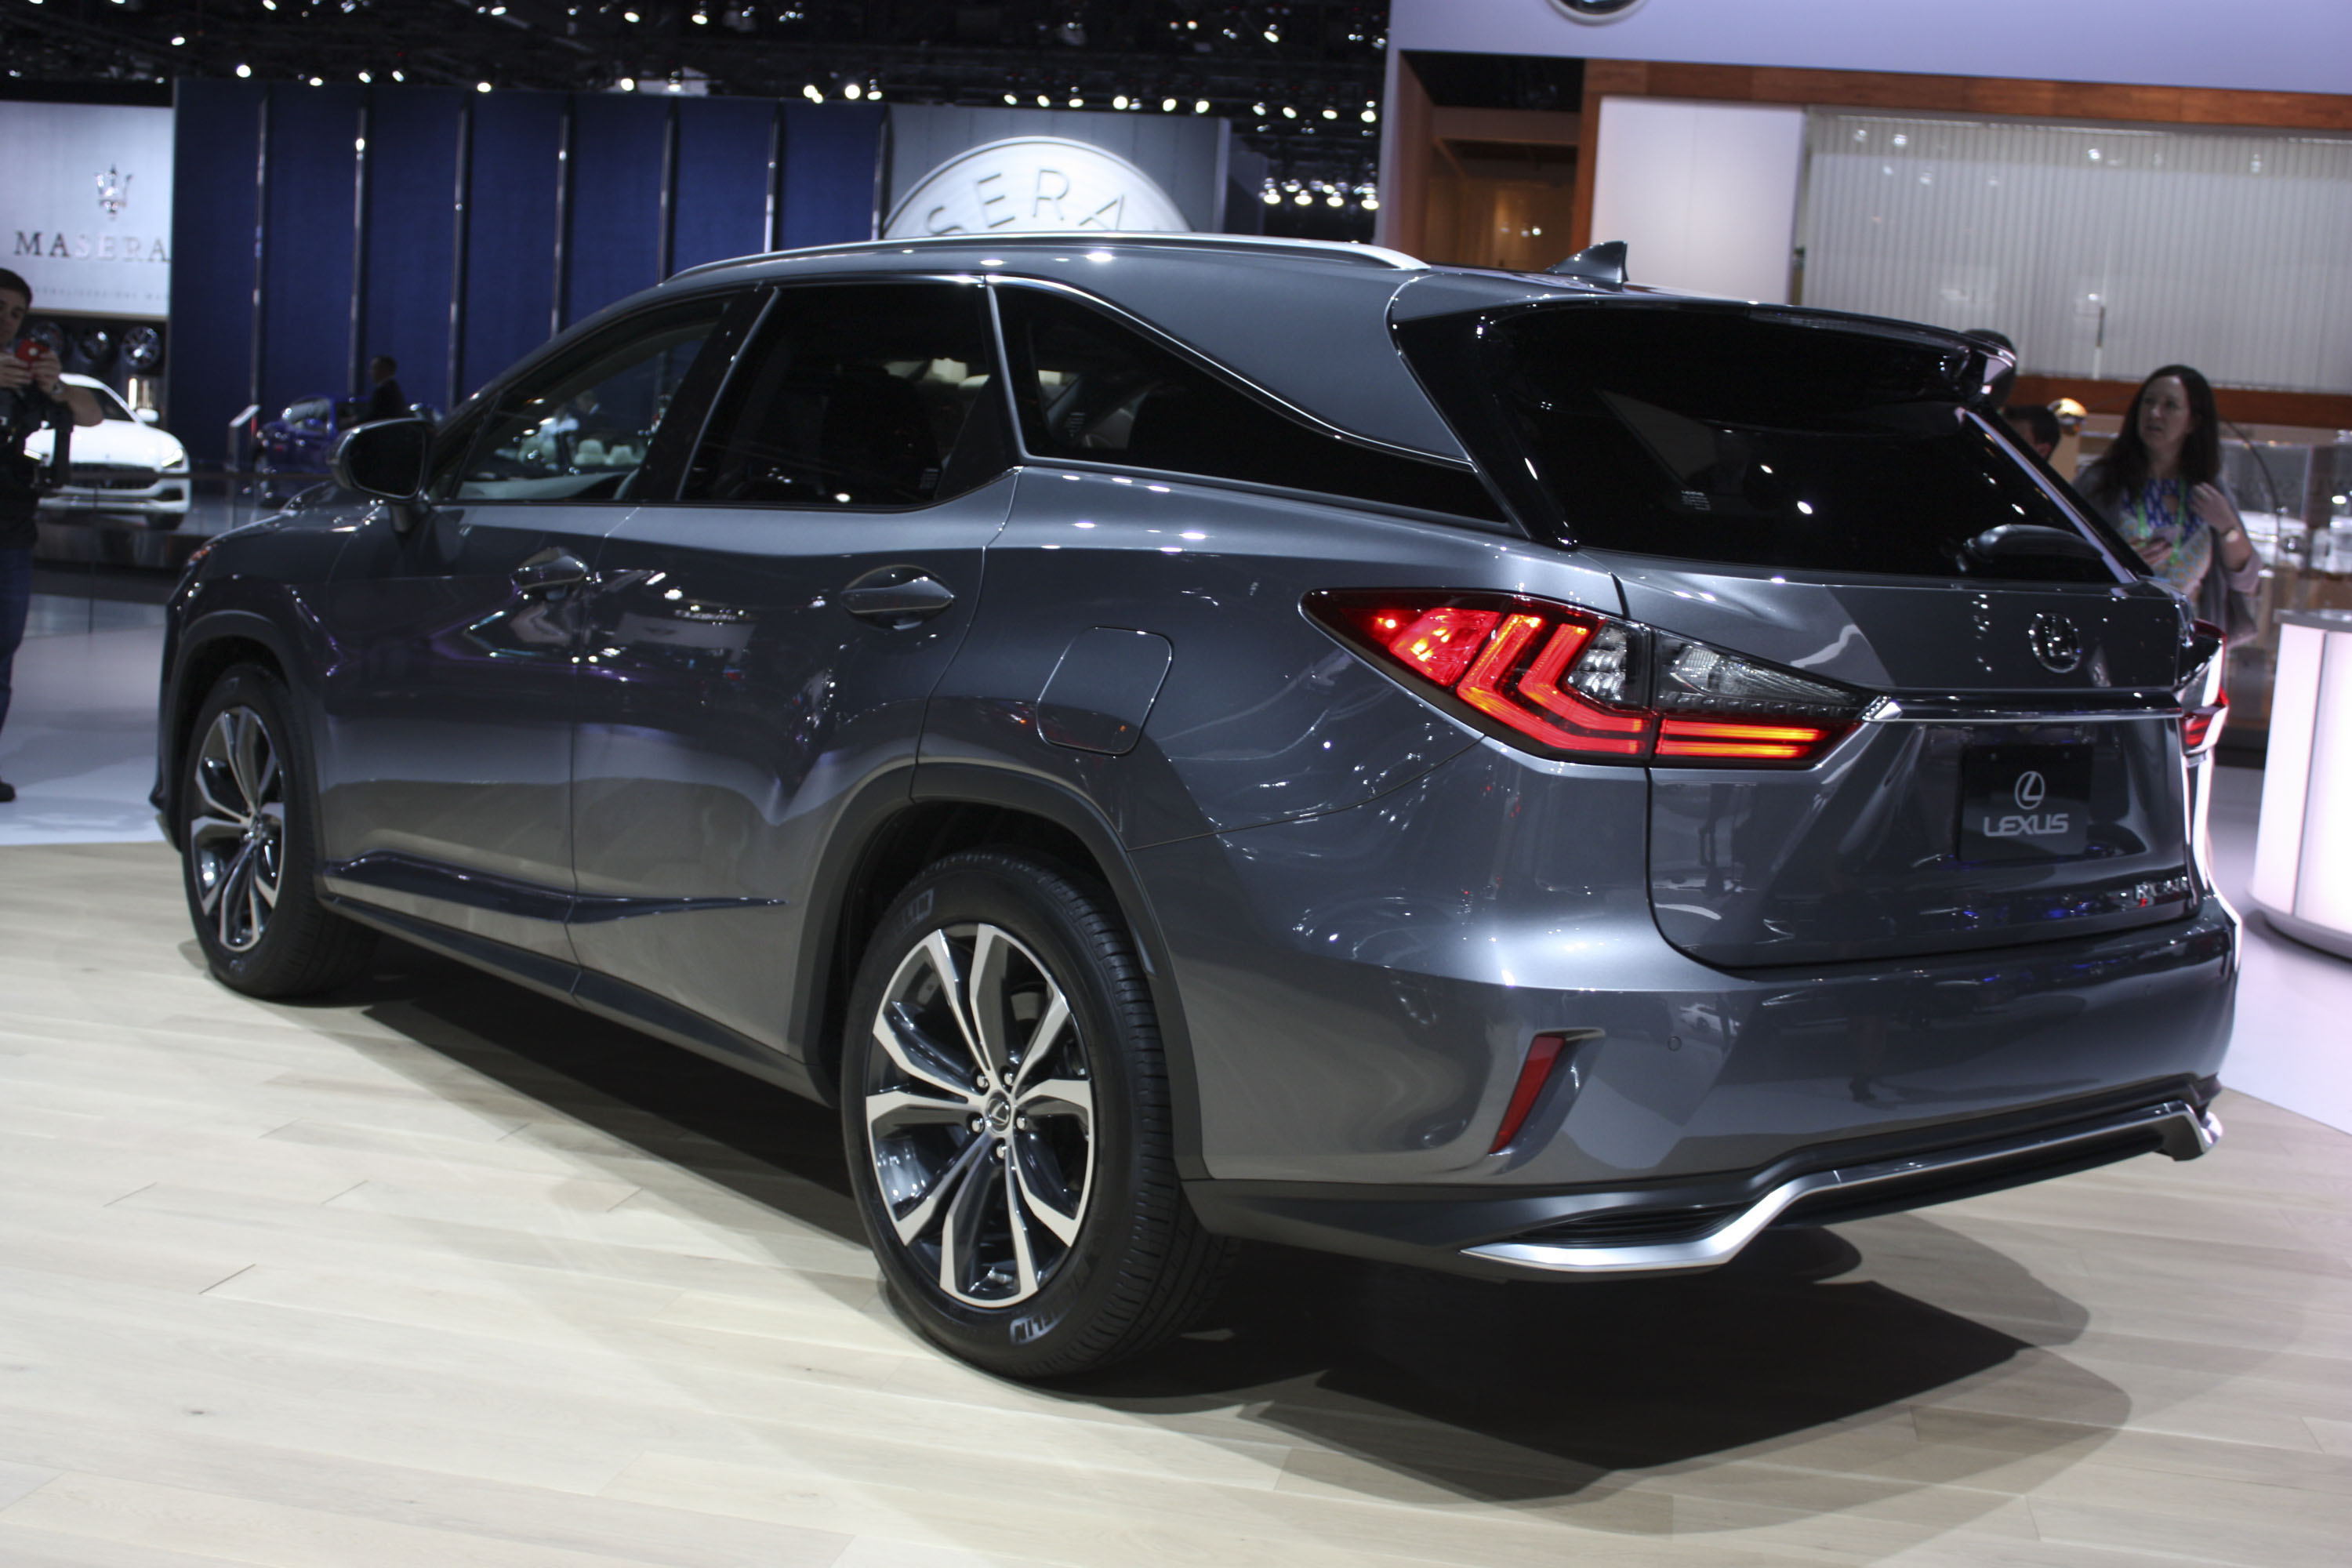 sale lexus suv rx for ad usautomobile cars in of king pa used prussia